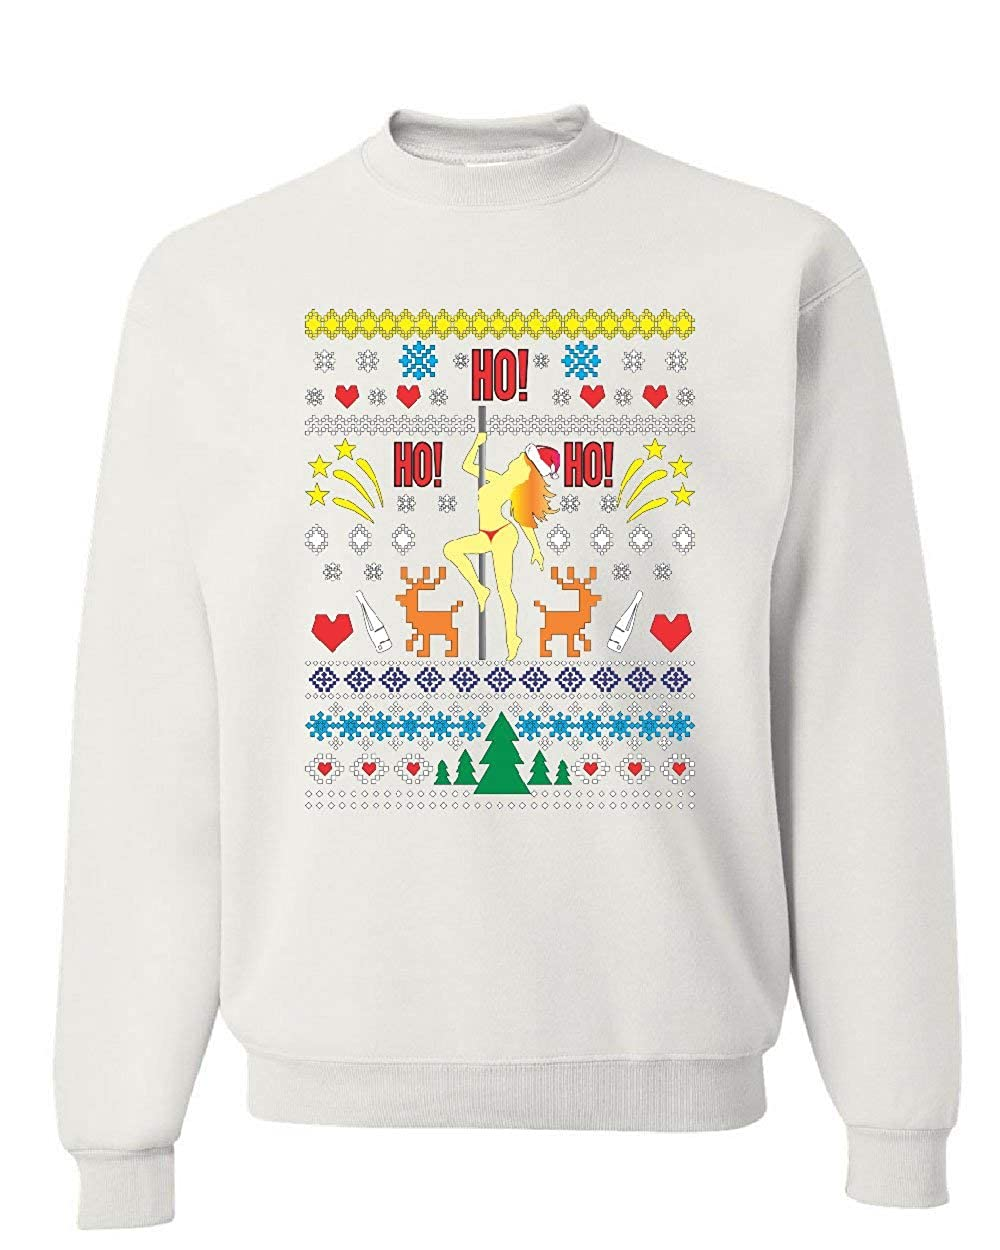 Ho Tee Hunt Ho Ho Stripper Ugly Sweater Sweatshirt Christmas Funny Xmas Sweater